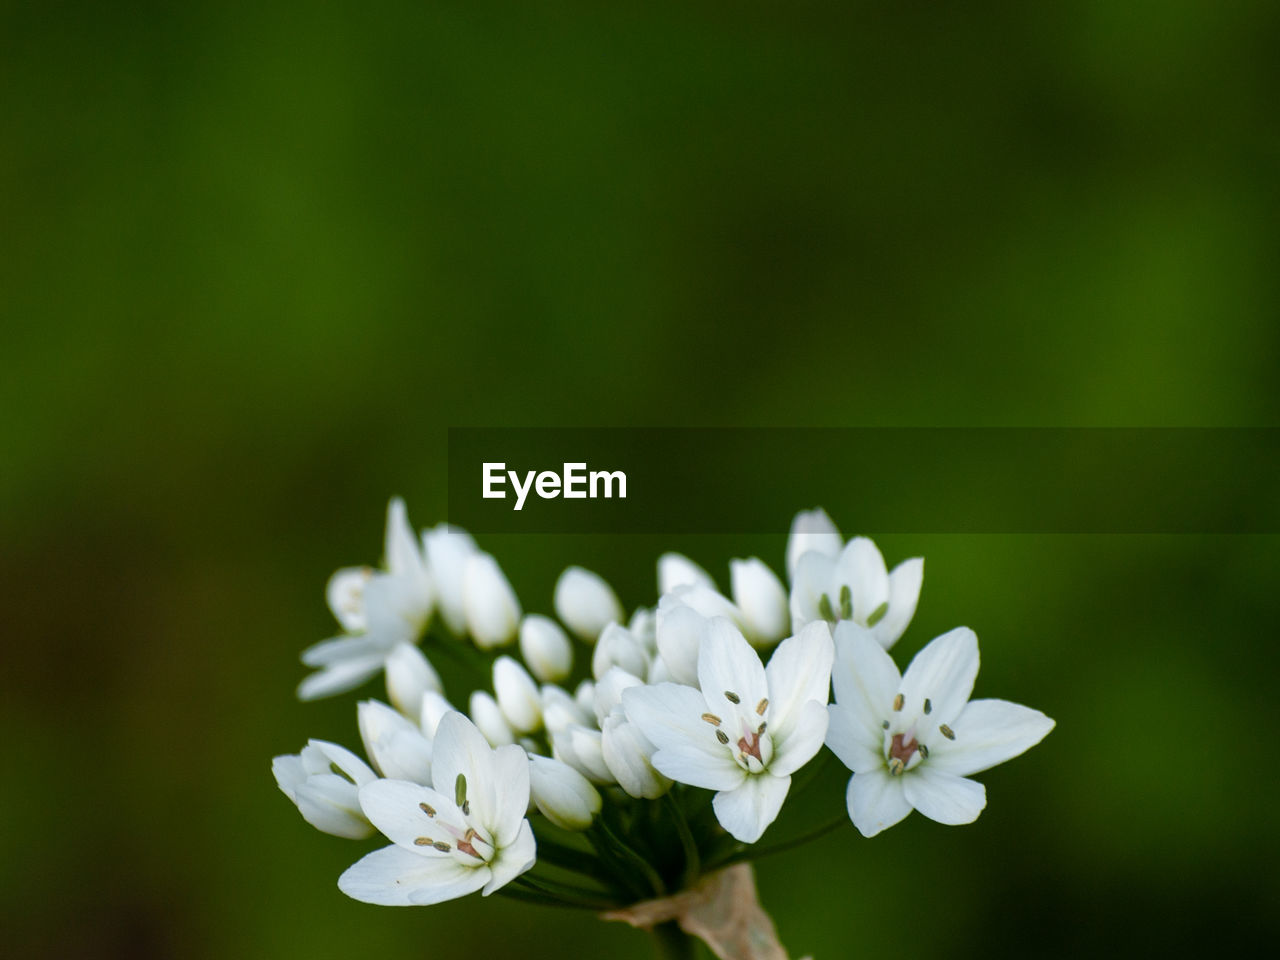 flower, flowering plant, vulnerability, fragility, plant, beauty in nature, freshness, close-up, petal, white color, growth, inflorescence, flower head, nature, no people, focus on foreground, day, selective focus, outdoors, botany